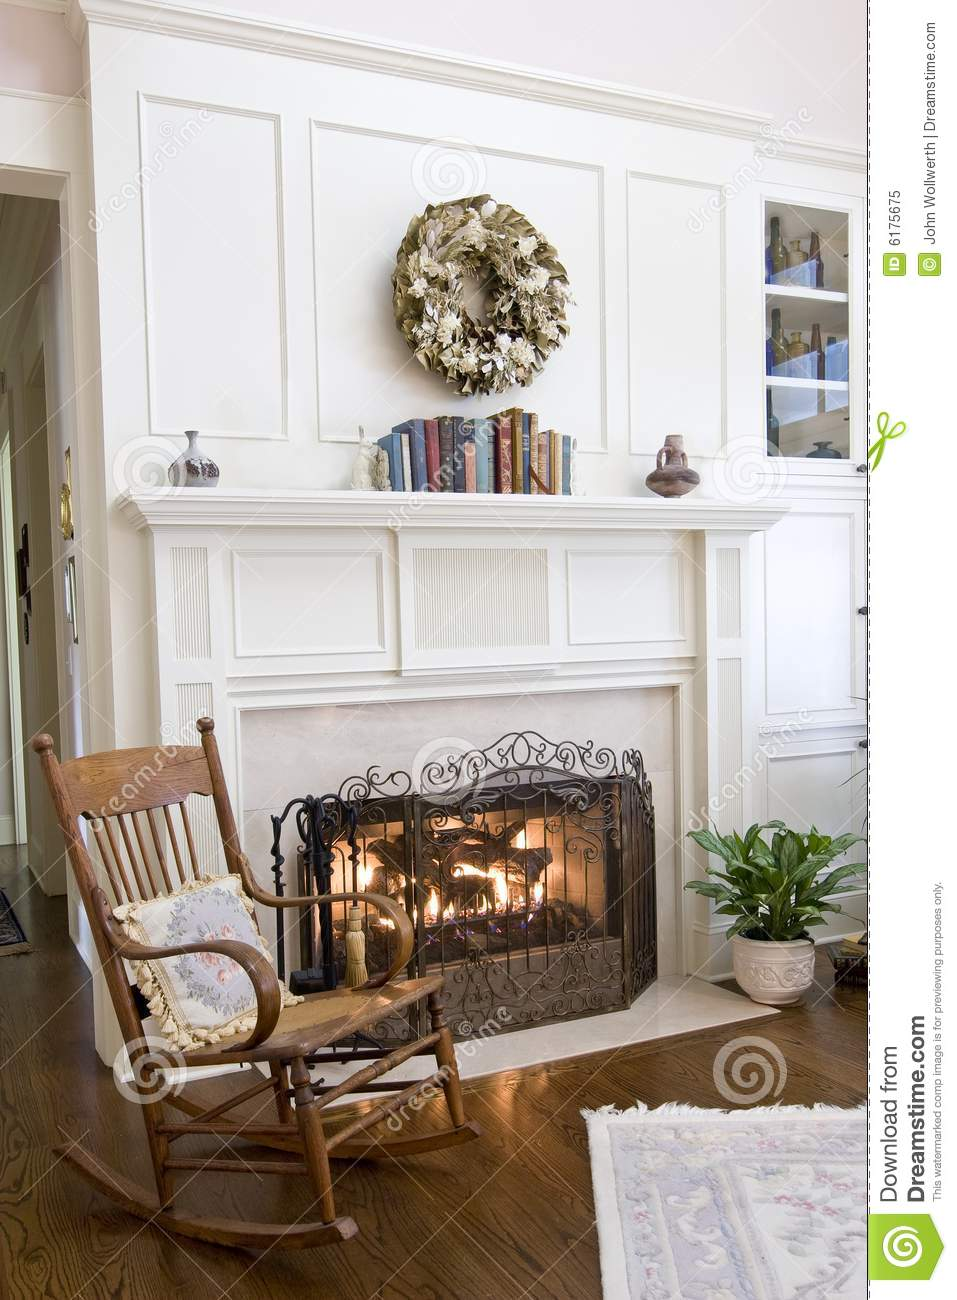 cozy fireplace royalty free stock photo image 6175675